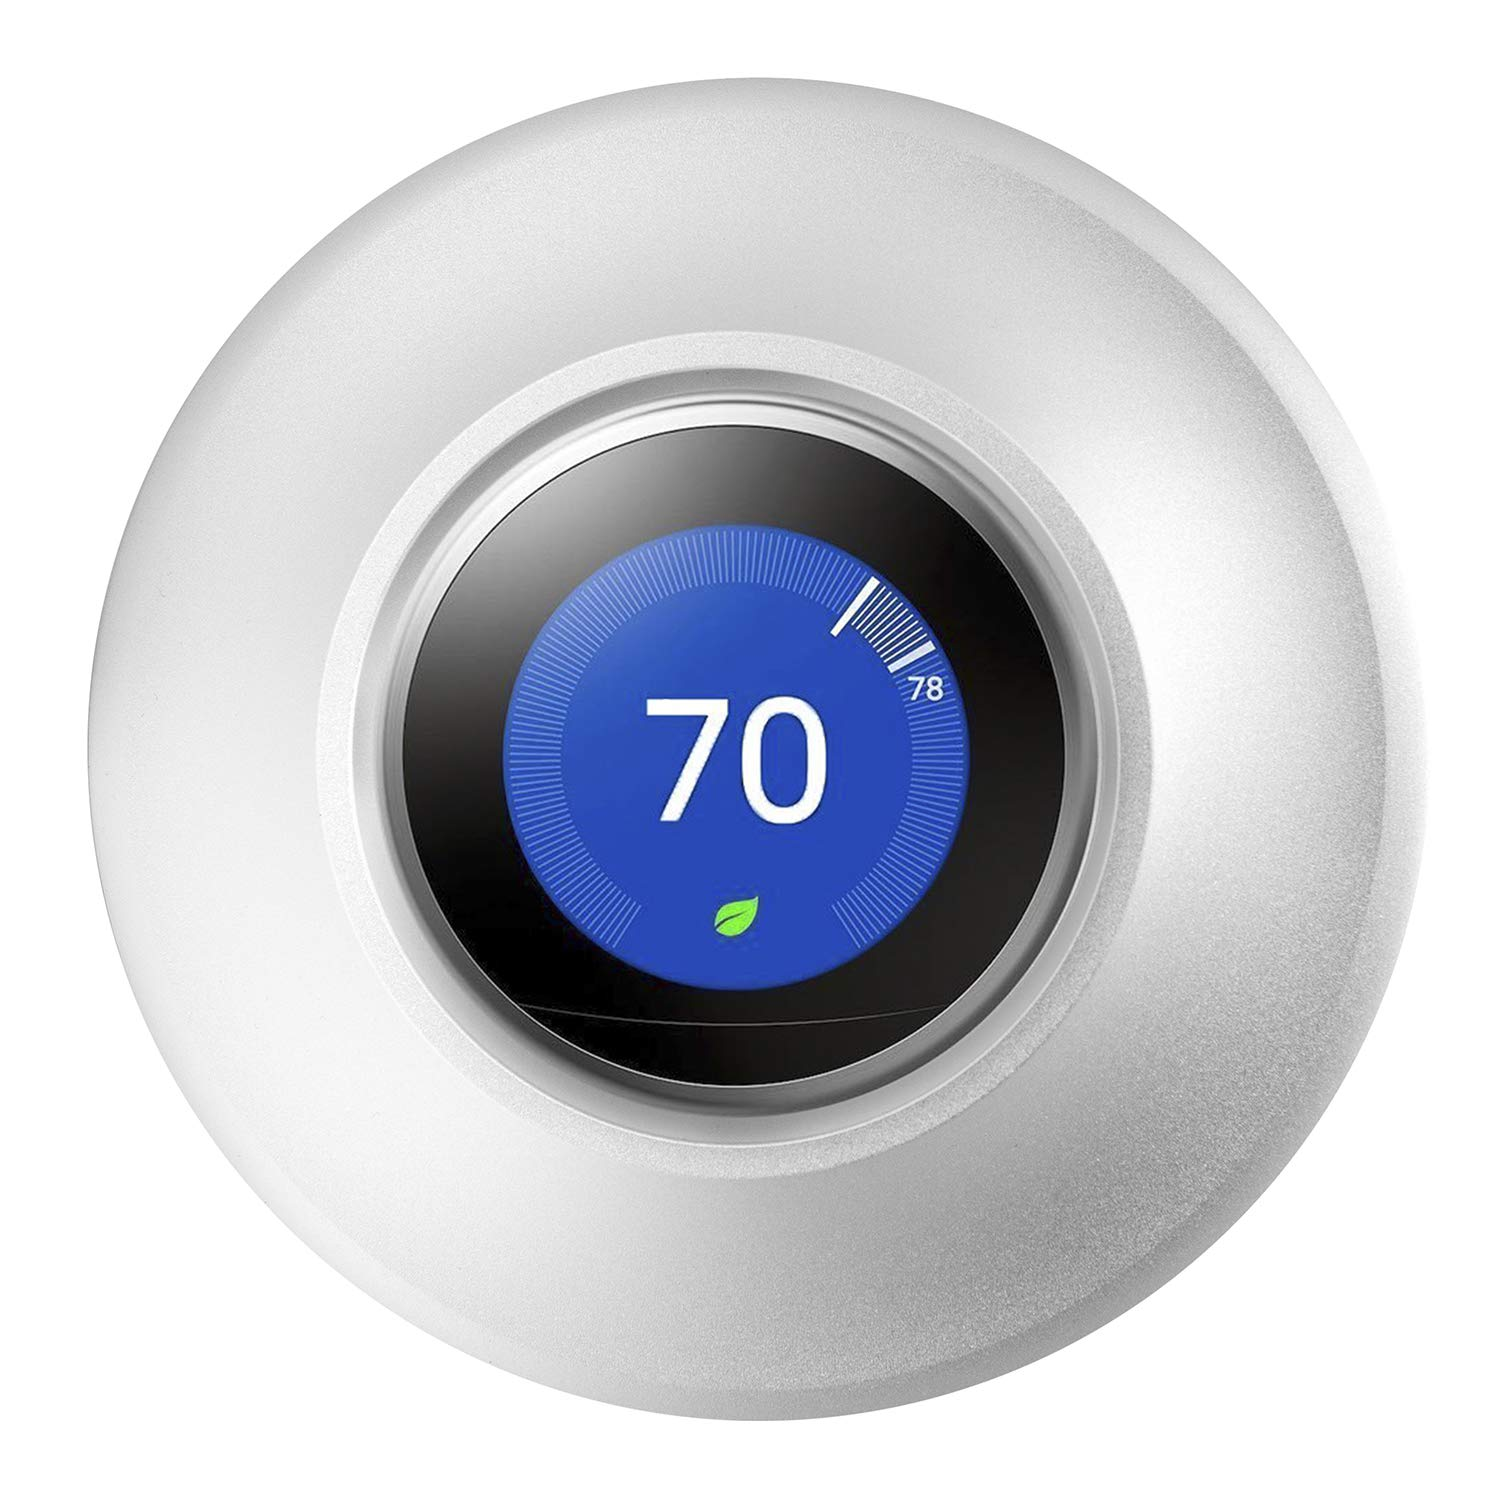 Popmas Wall Plate For Nest Learning Thermostat 3rd 2nd 1st